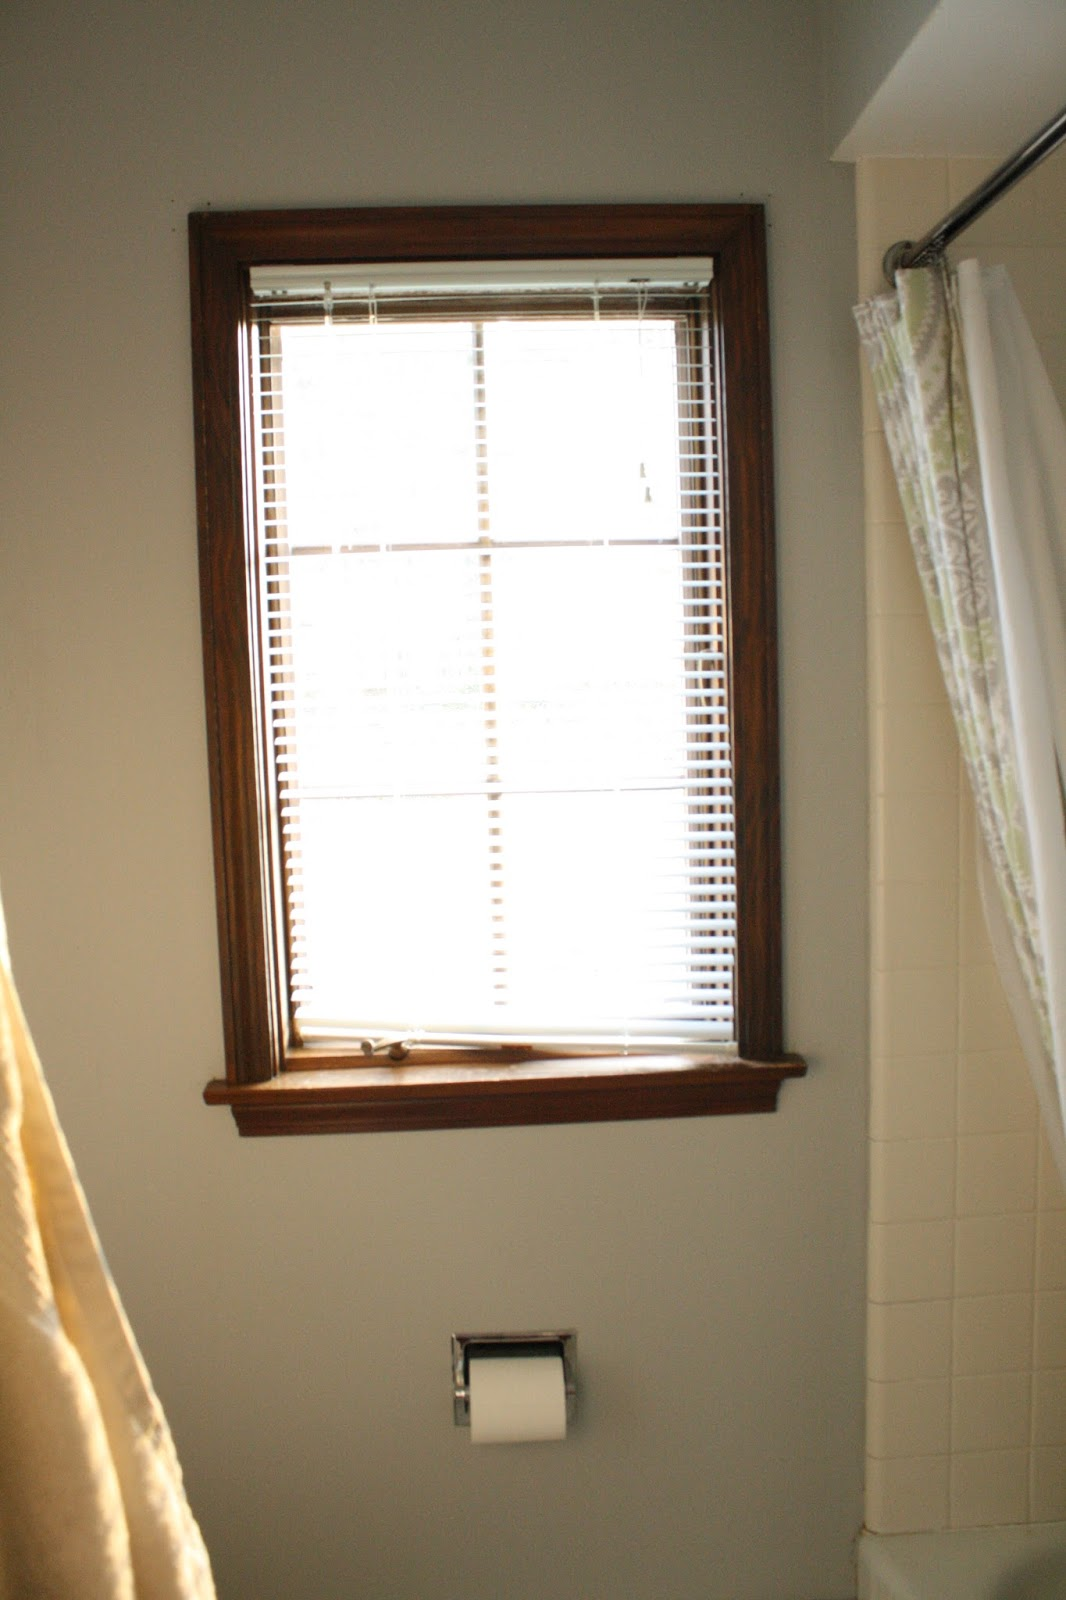 This South Facing Window Lets A Lot Of Light Into Our Bathroom, But Also  Needs To Be Dressed Up With A Valance Of Some Sort. And While We Can See  It, ...